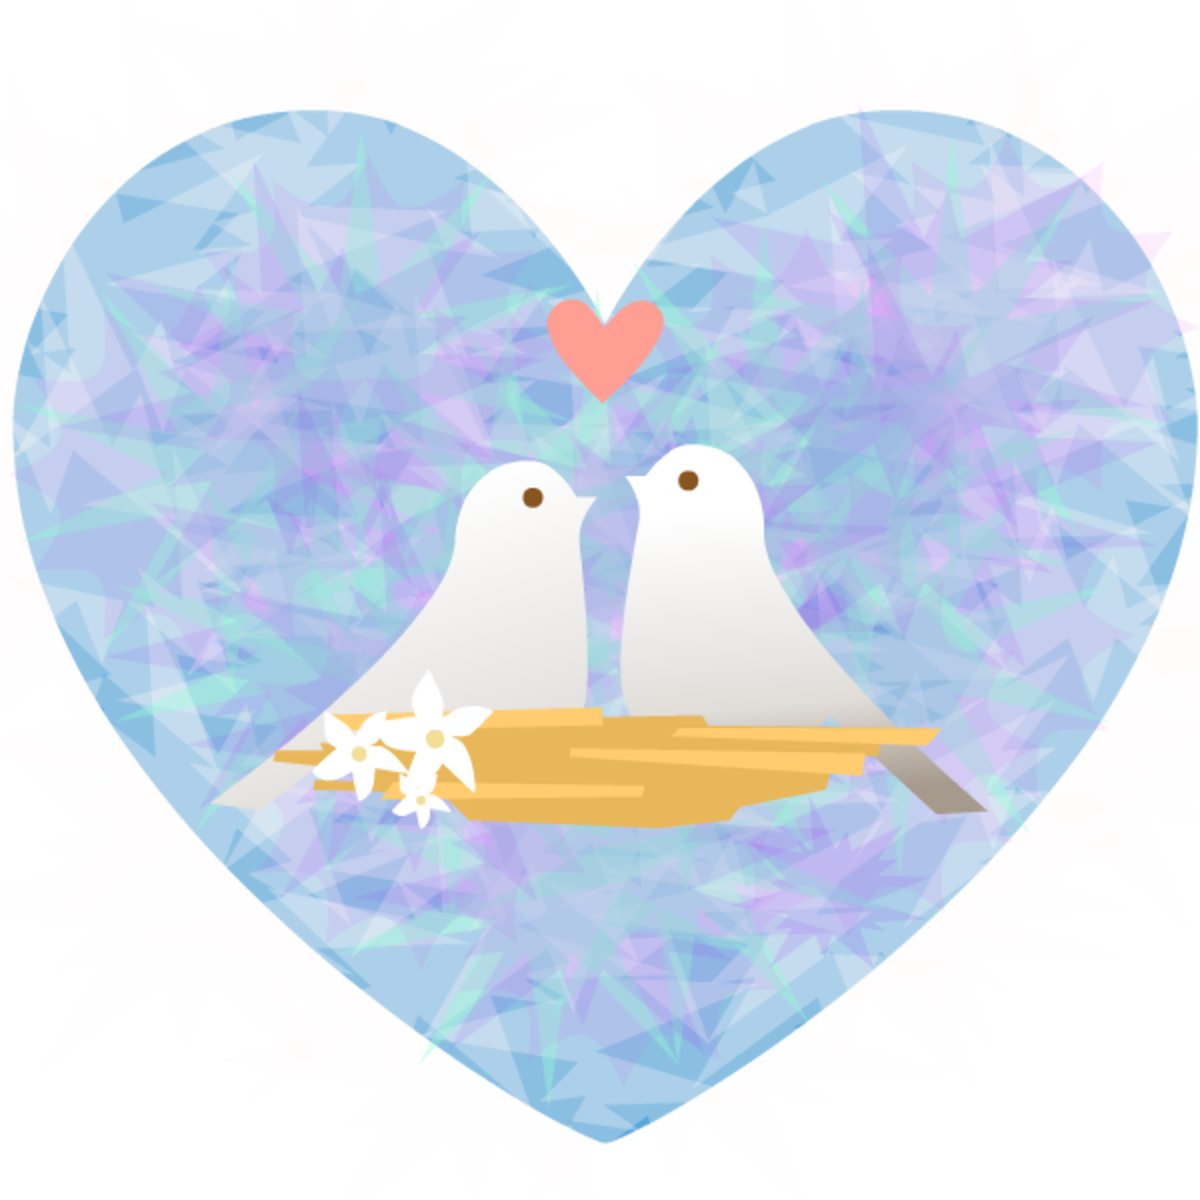 Lovebirds blue patterned heart clipart image